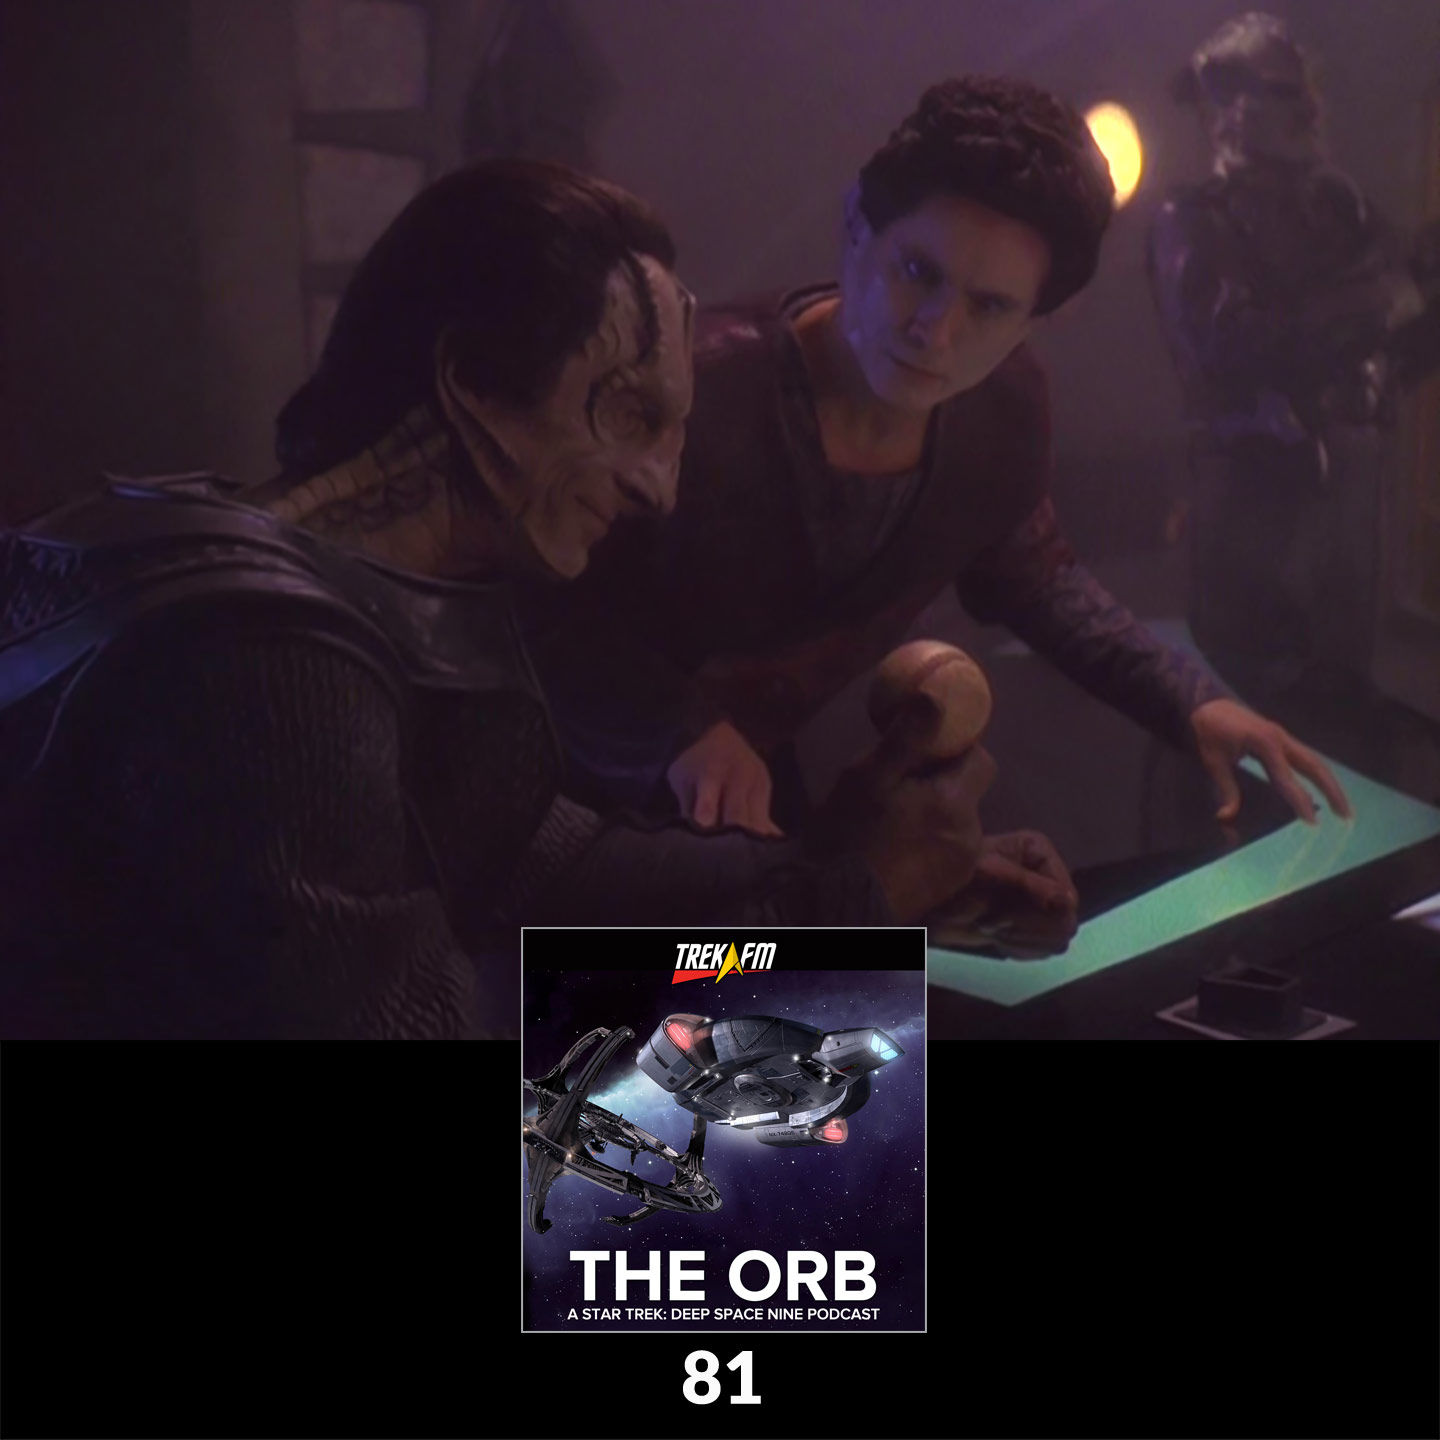 The Orb 81: Losing the Peace